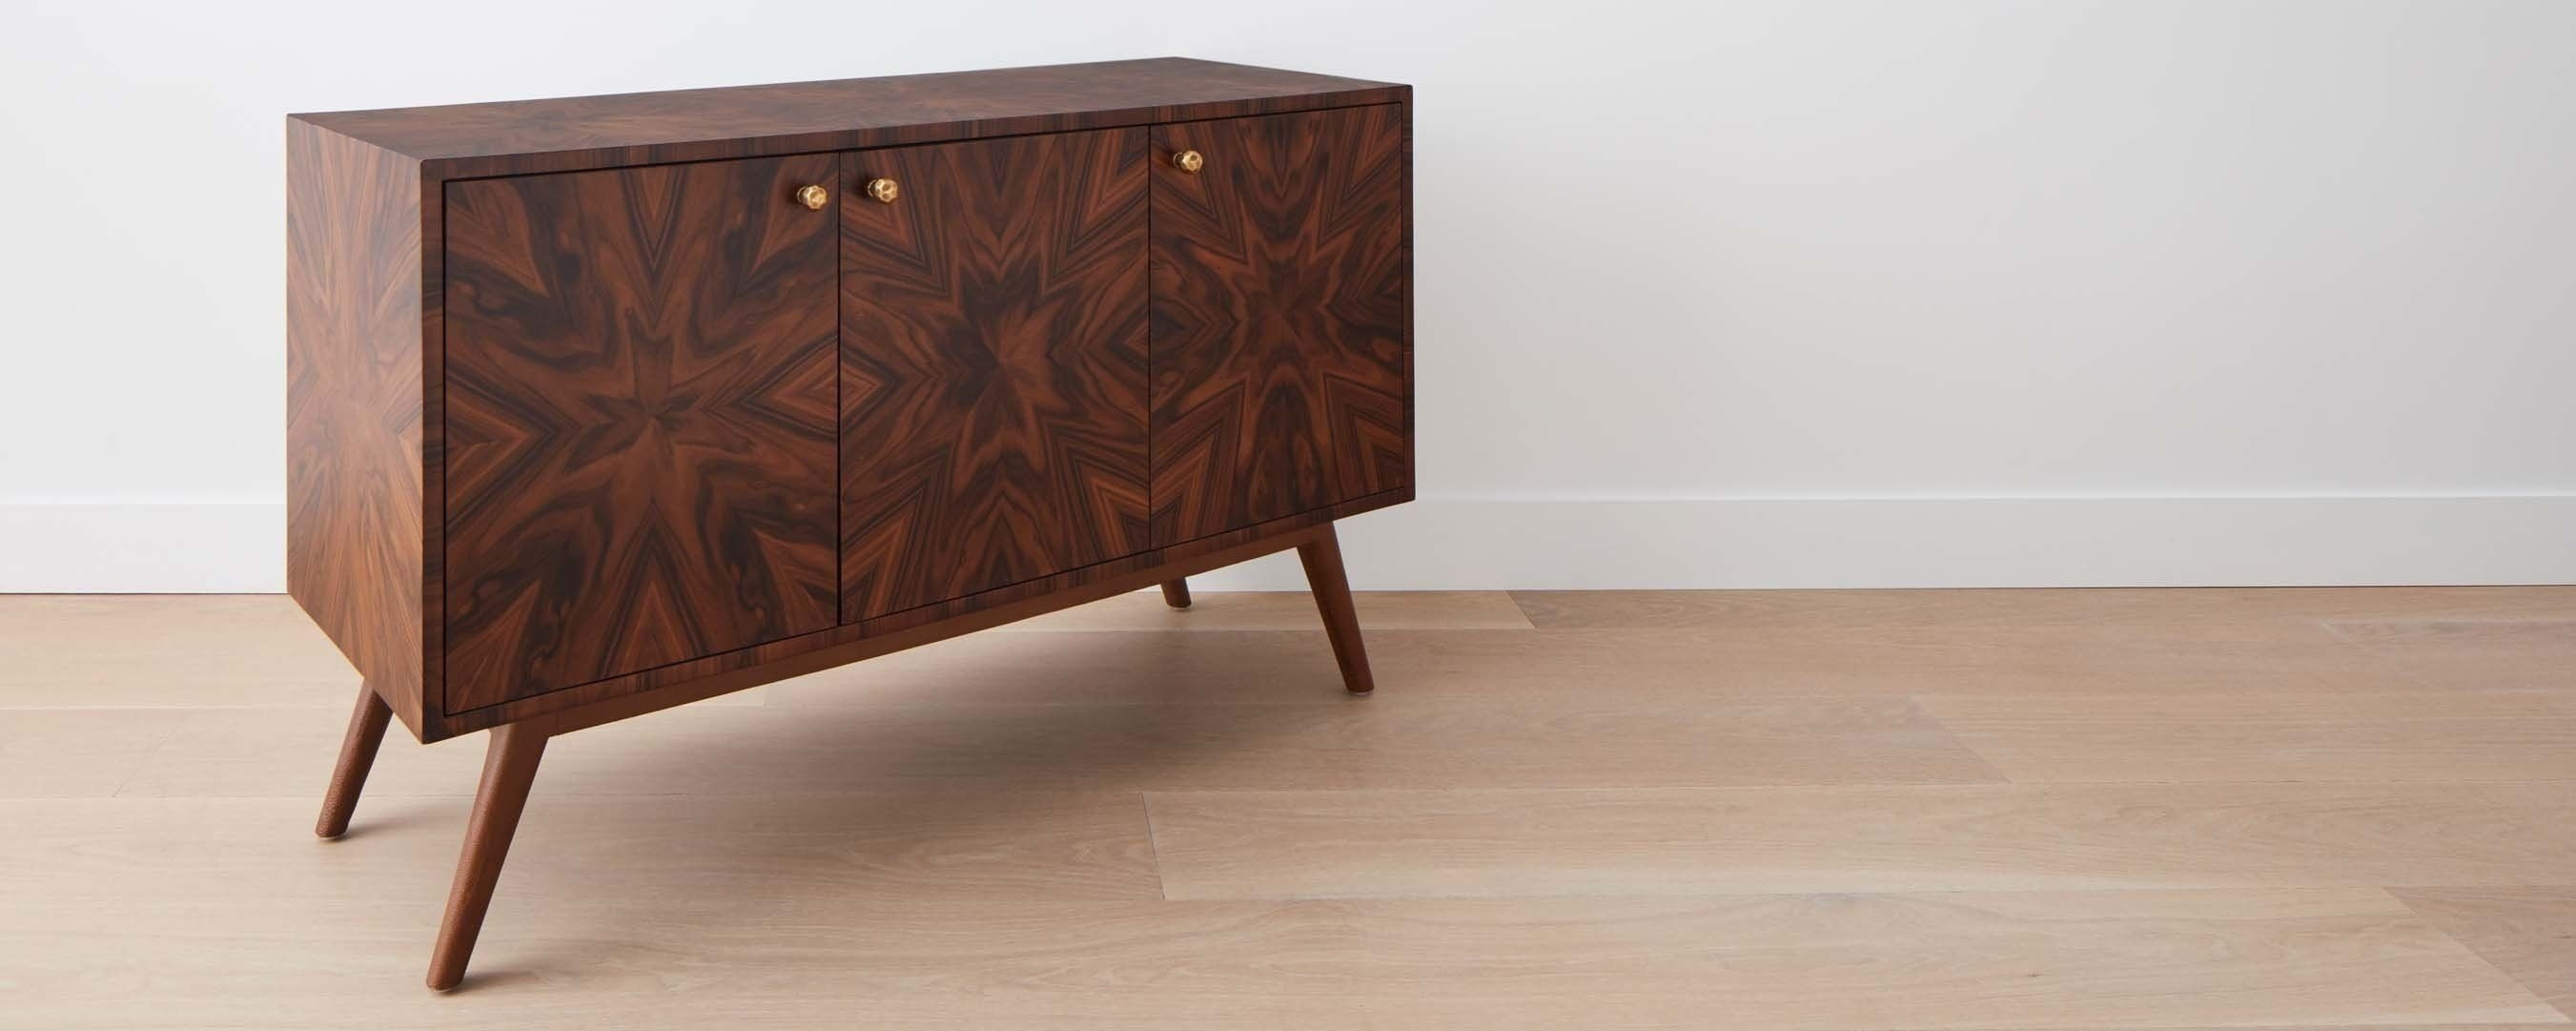 Rosewood 3-Drawer Buffet | Ffe | Cabinets, Sideboards And Wardrobes inside Starburst 3 Door Sideboards (Image 21 of 30)